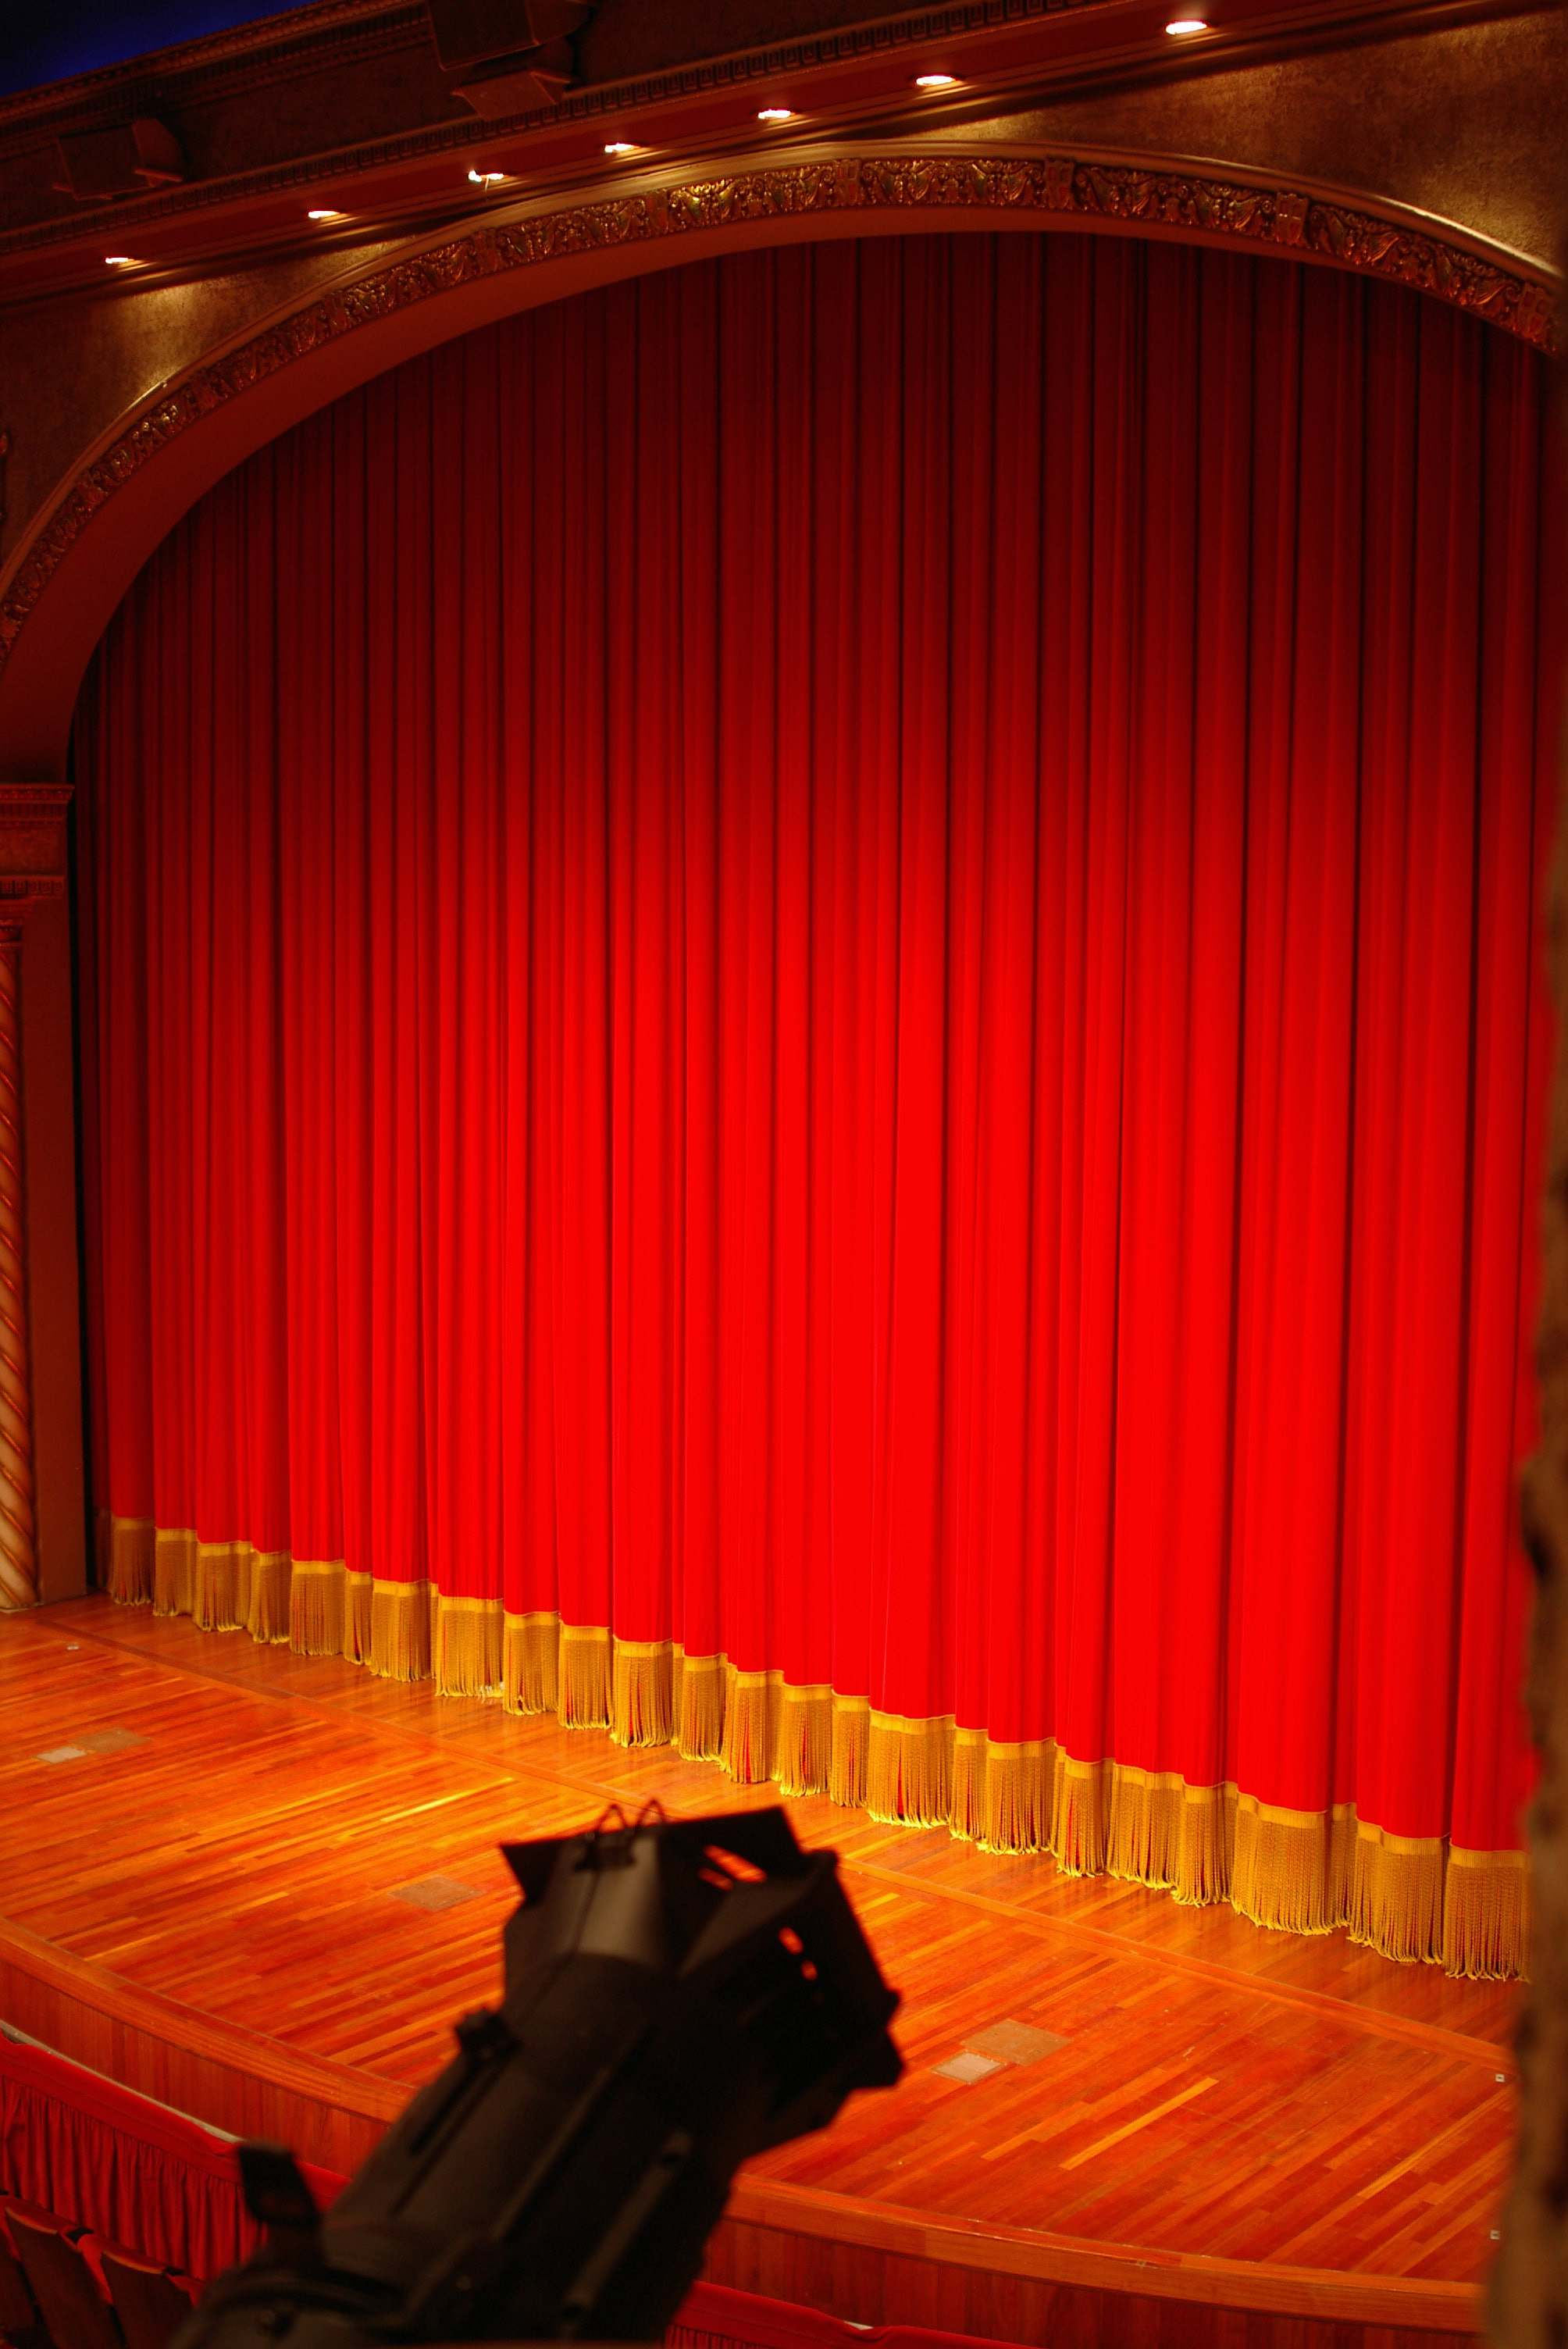 Interior Design Red Theater Curtain Indoors Image